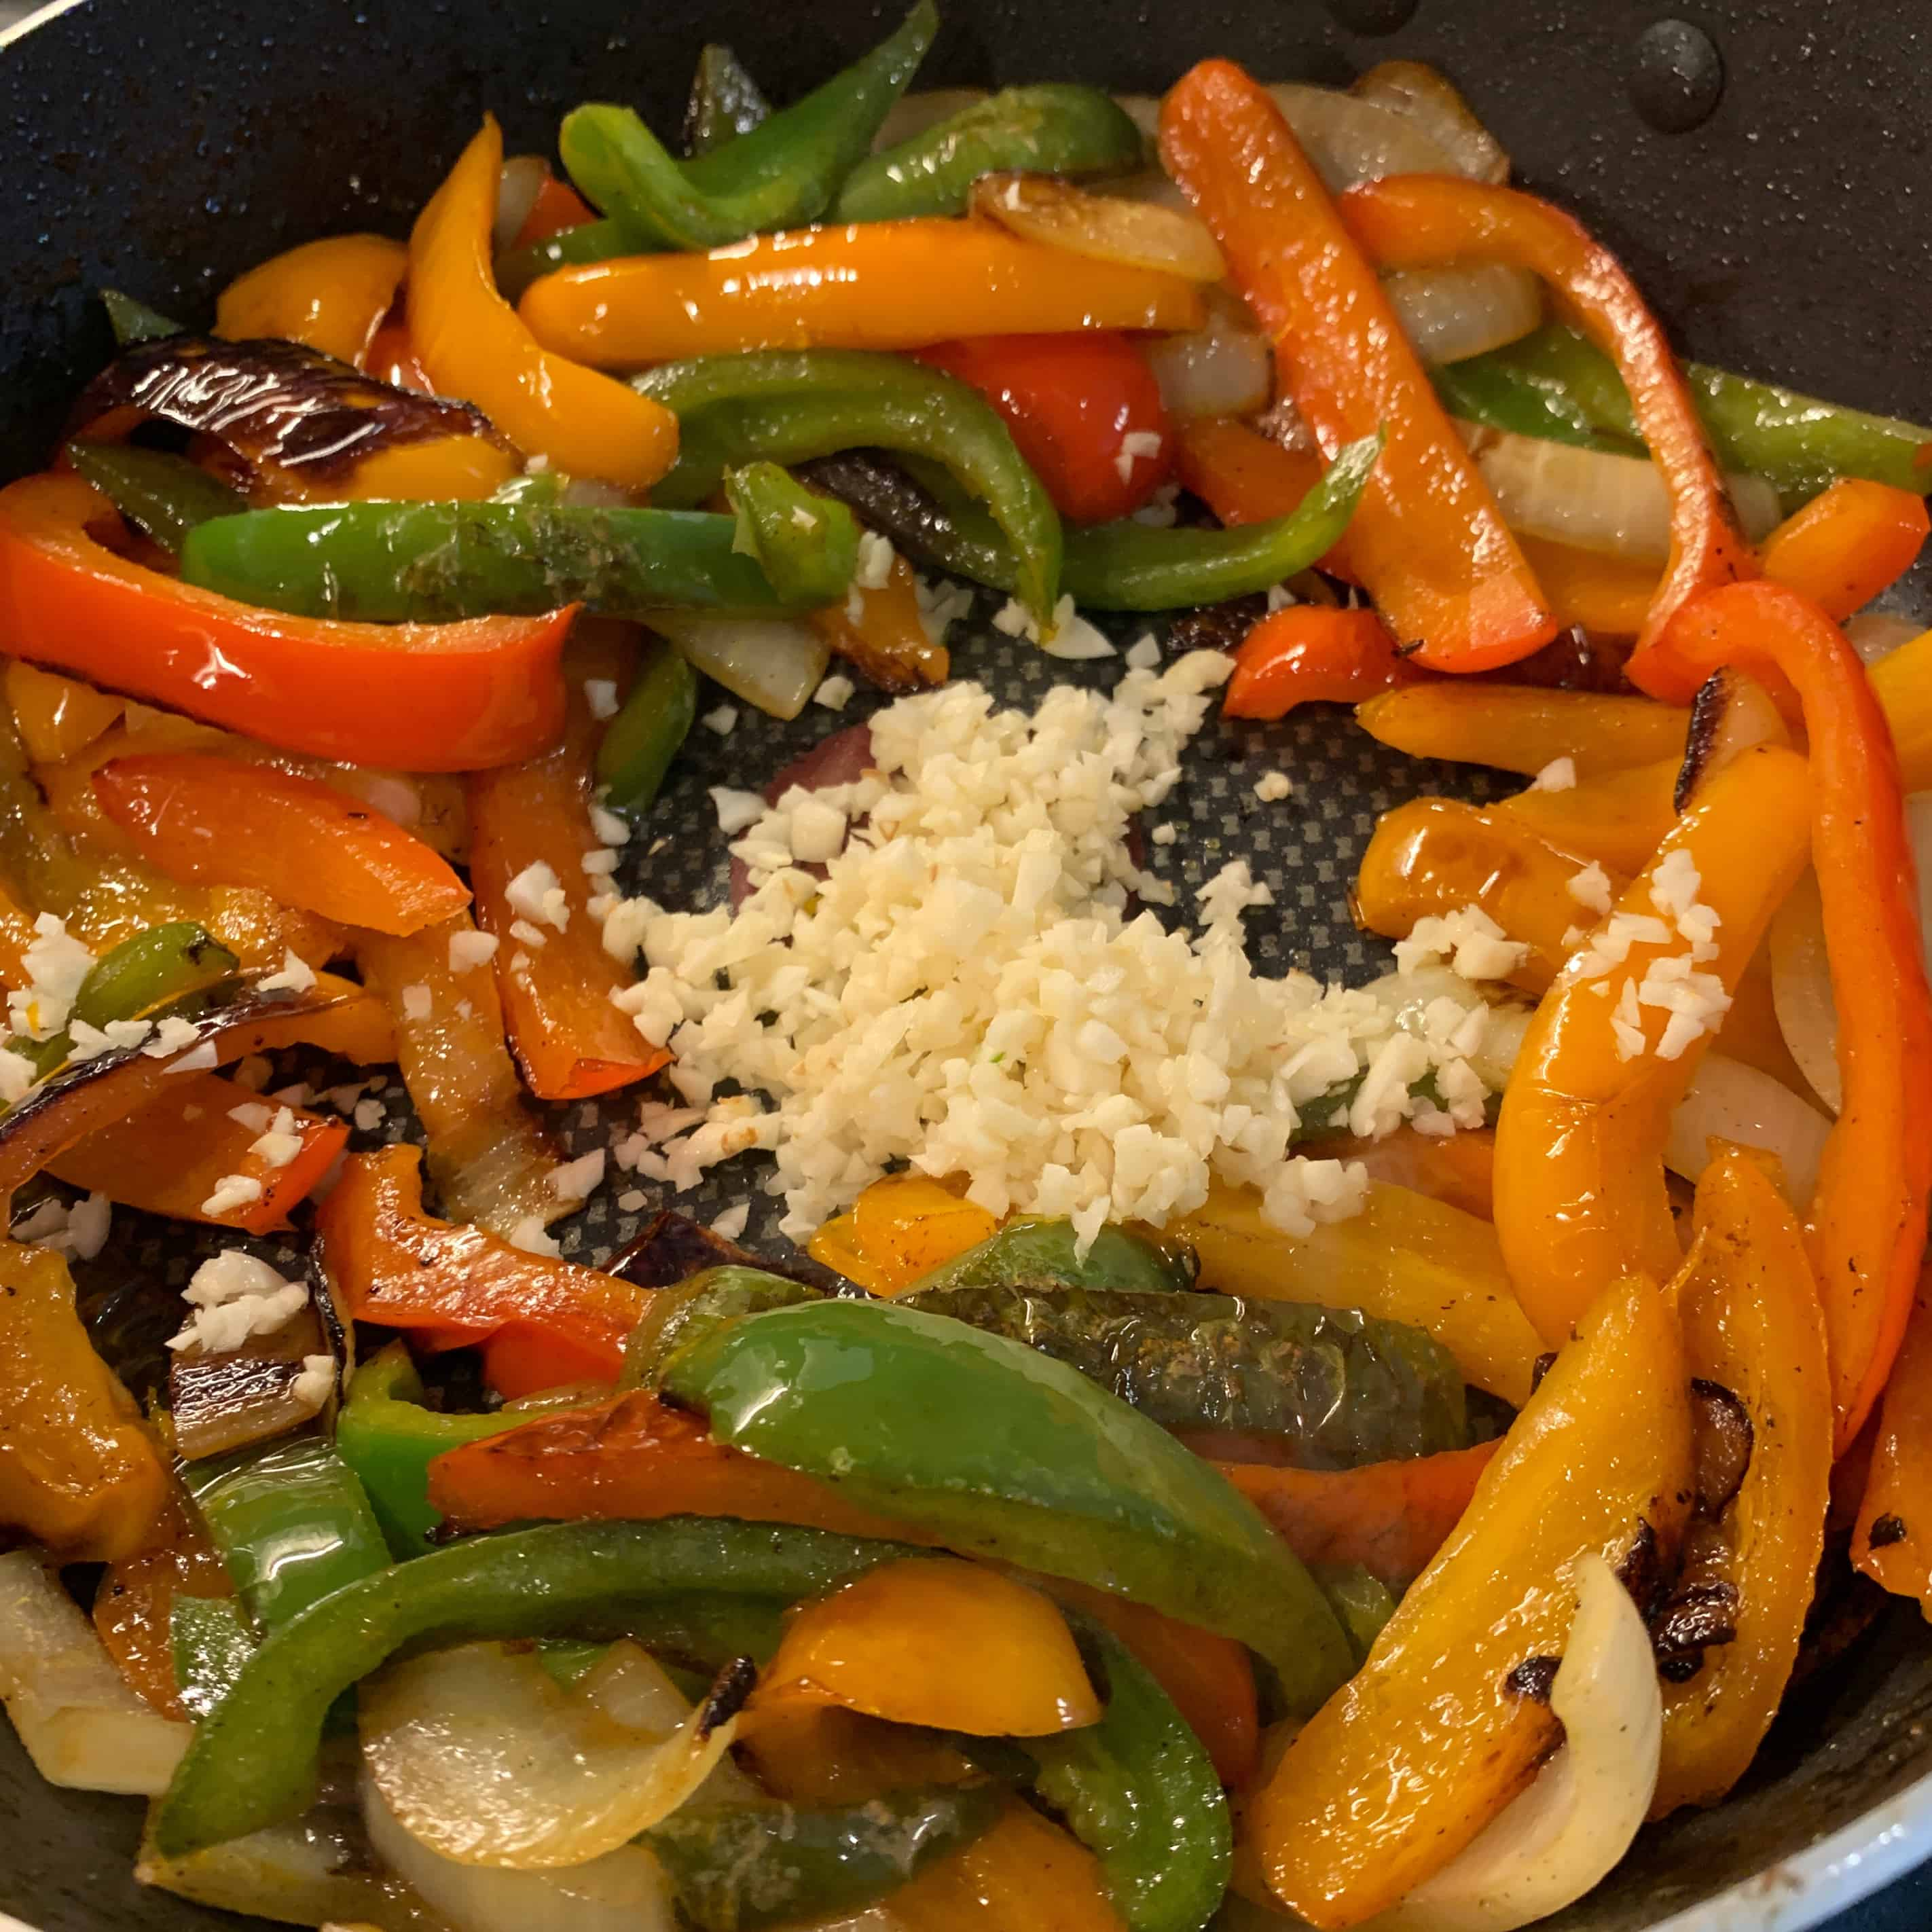 minced garlic in the skillet with sauteed peppers and onions